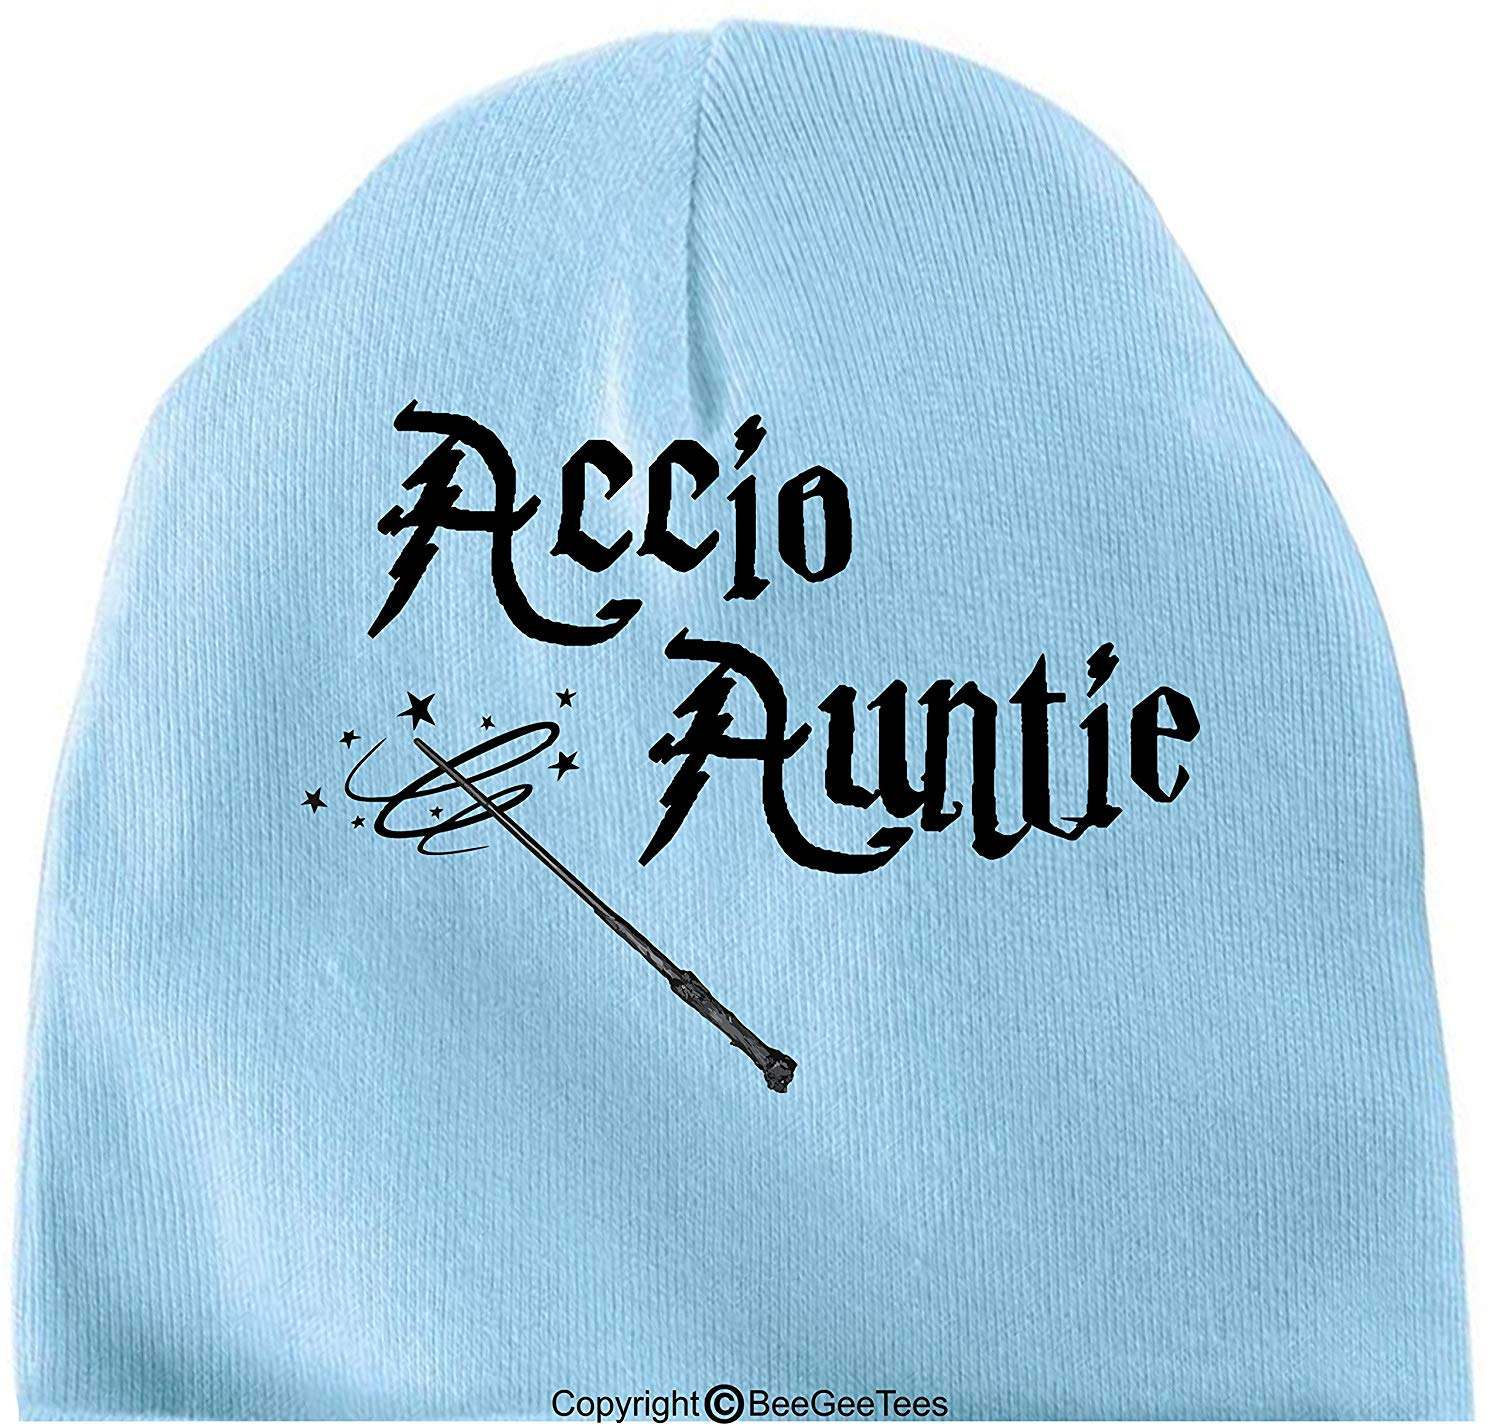 BeeGeeTees Accio Auntie Funny Harry Potter Inspired Hogwarts Baby Wizard Cap by